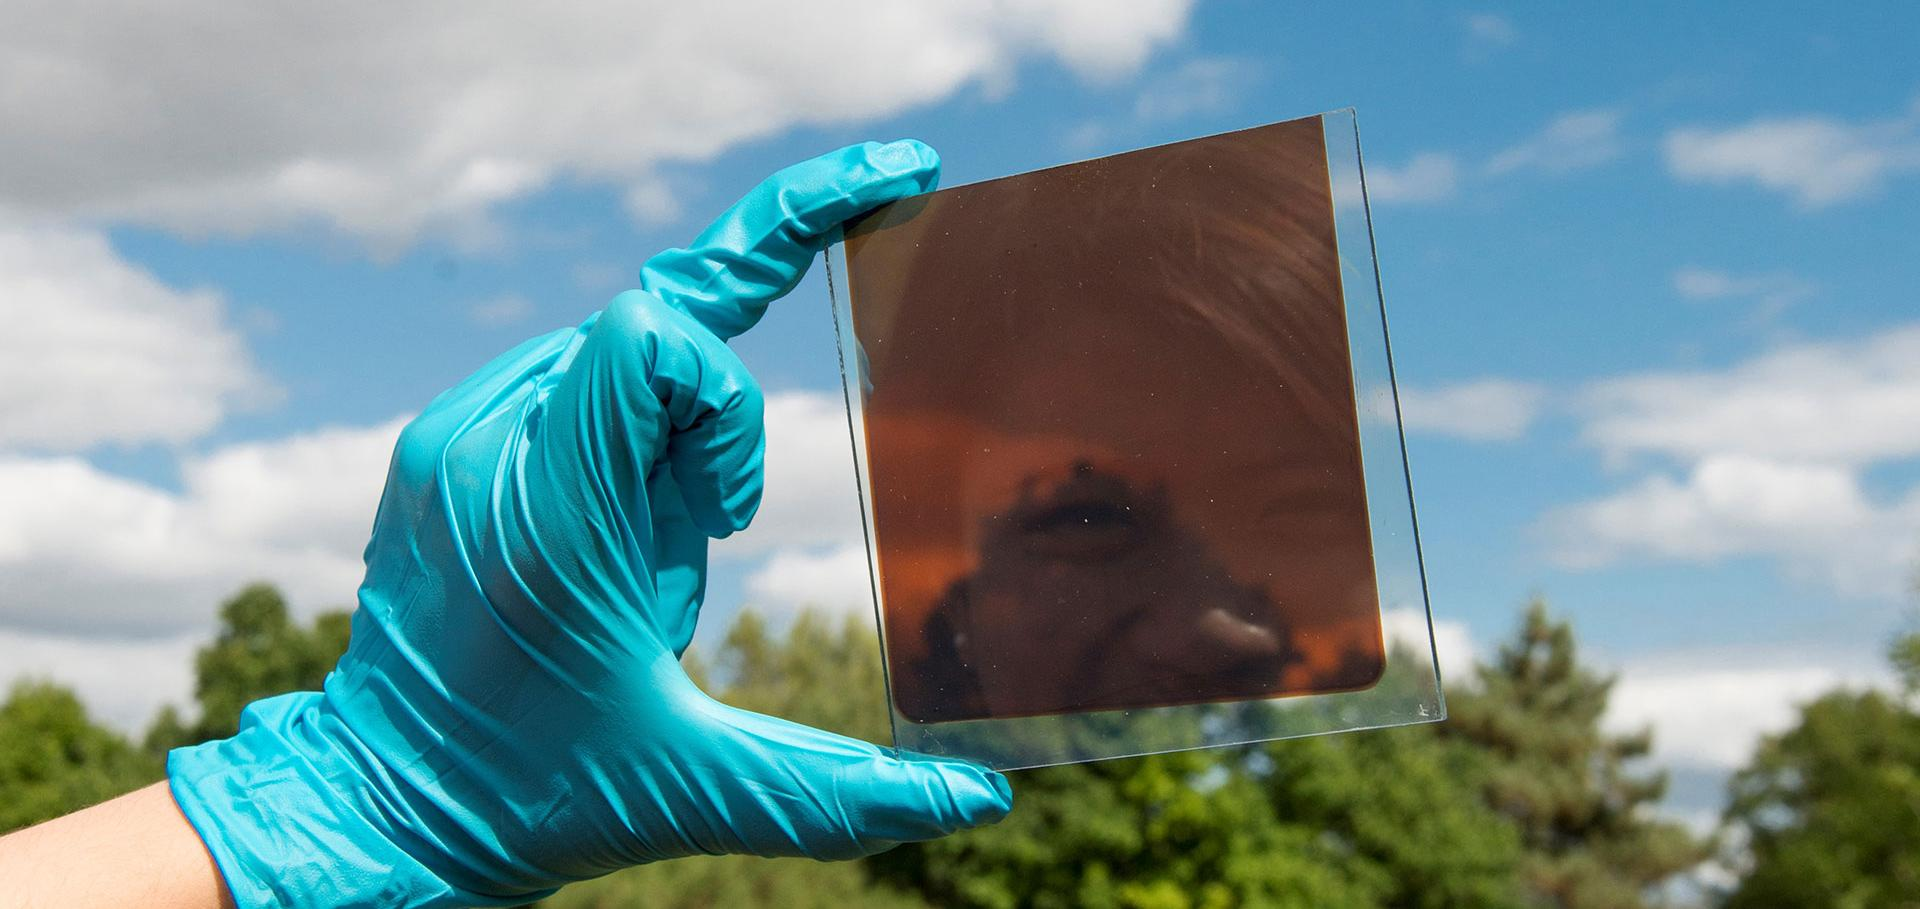 Reflection of smiling face in photovoltaic cell